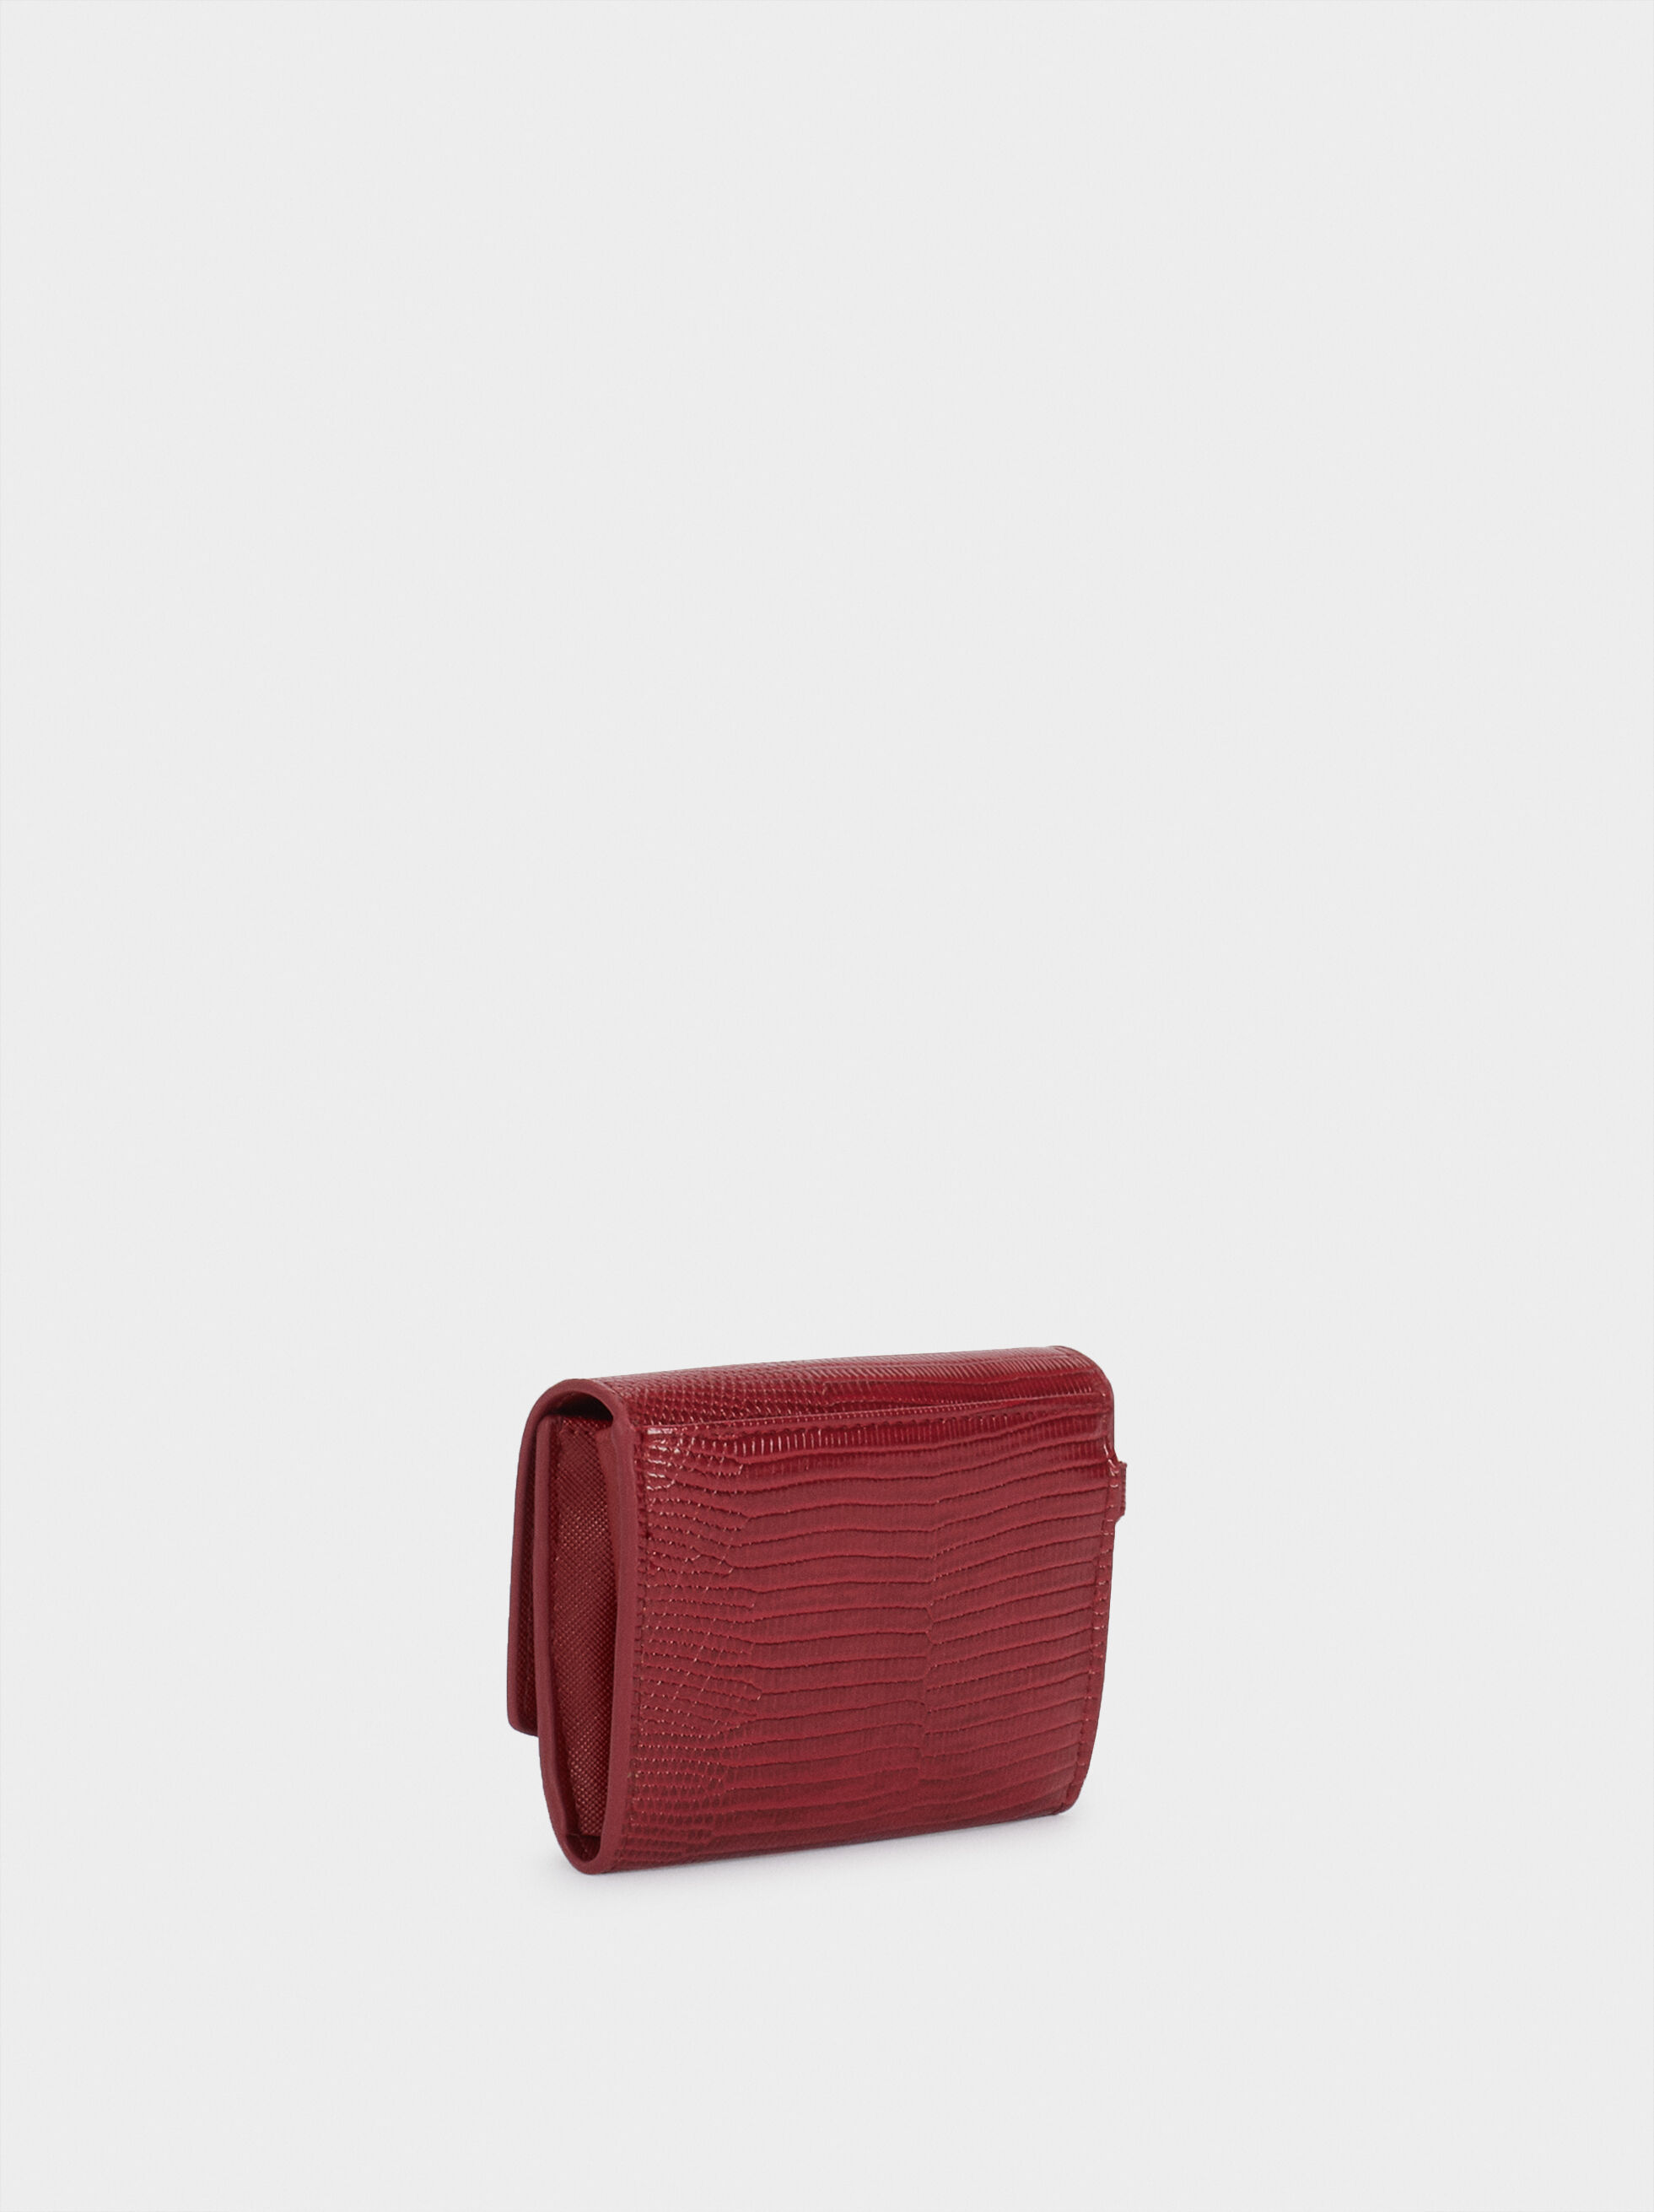 Animal Print Purse, Red, hi-res